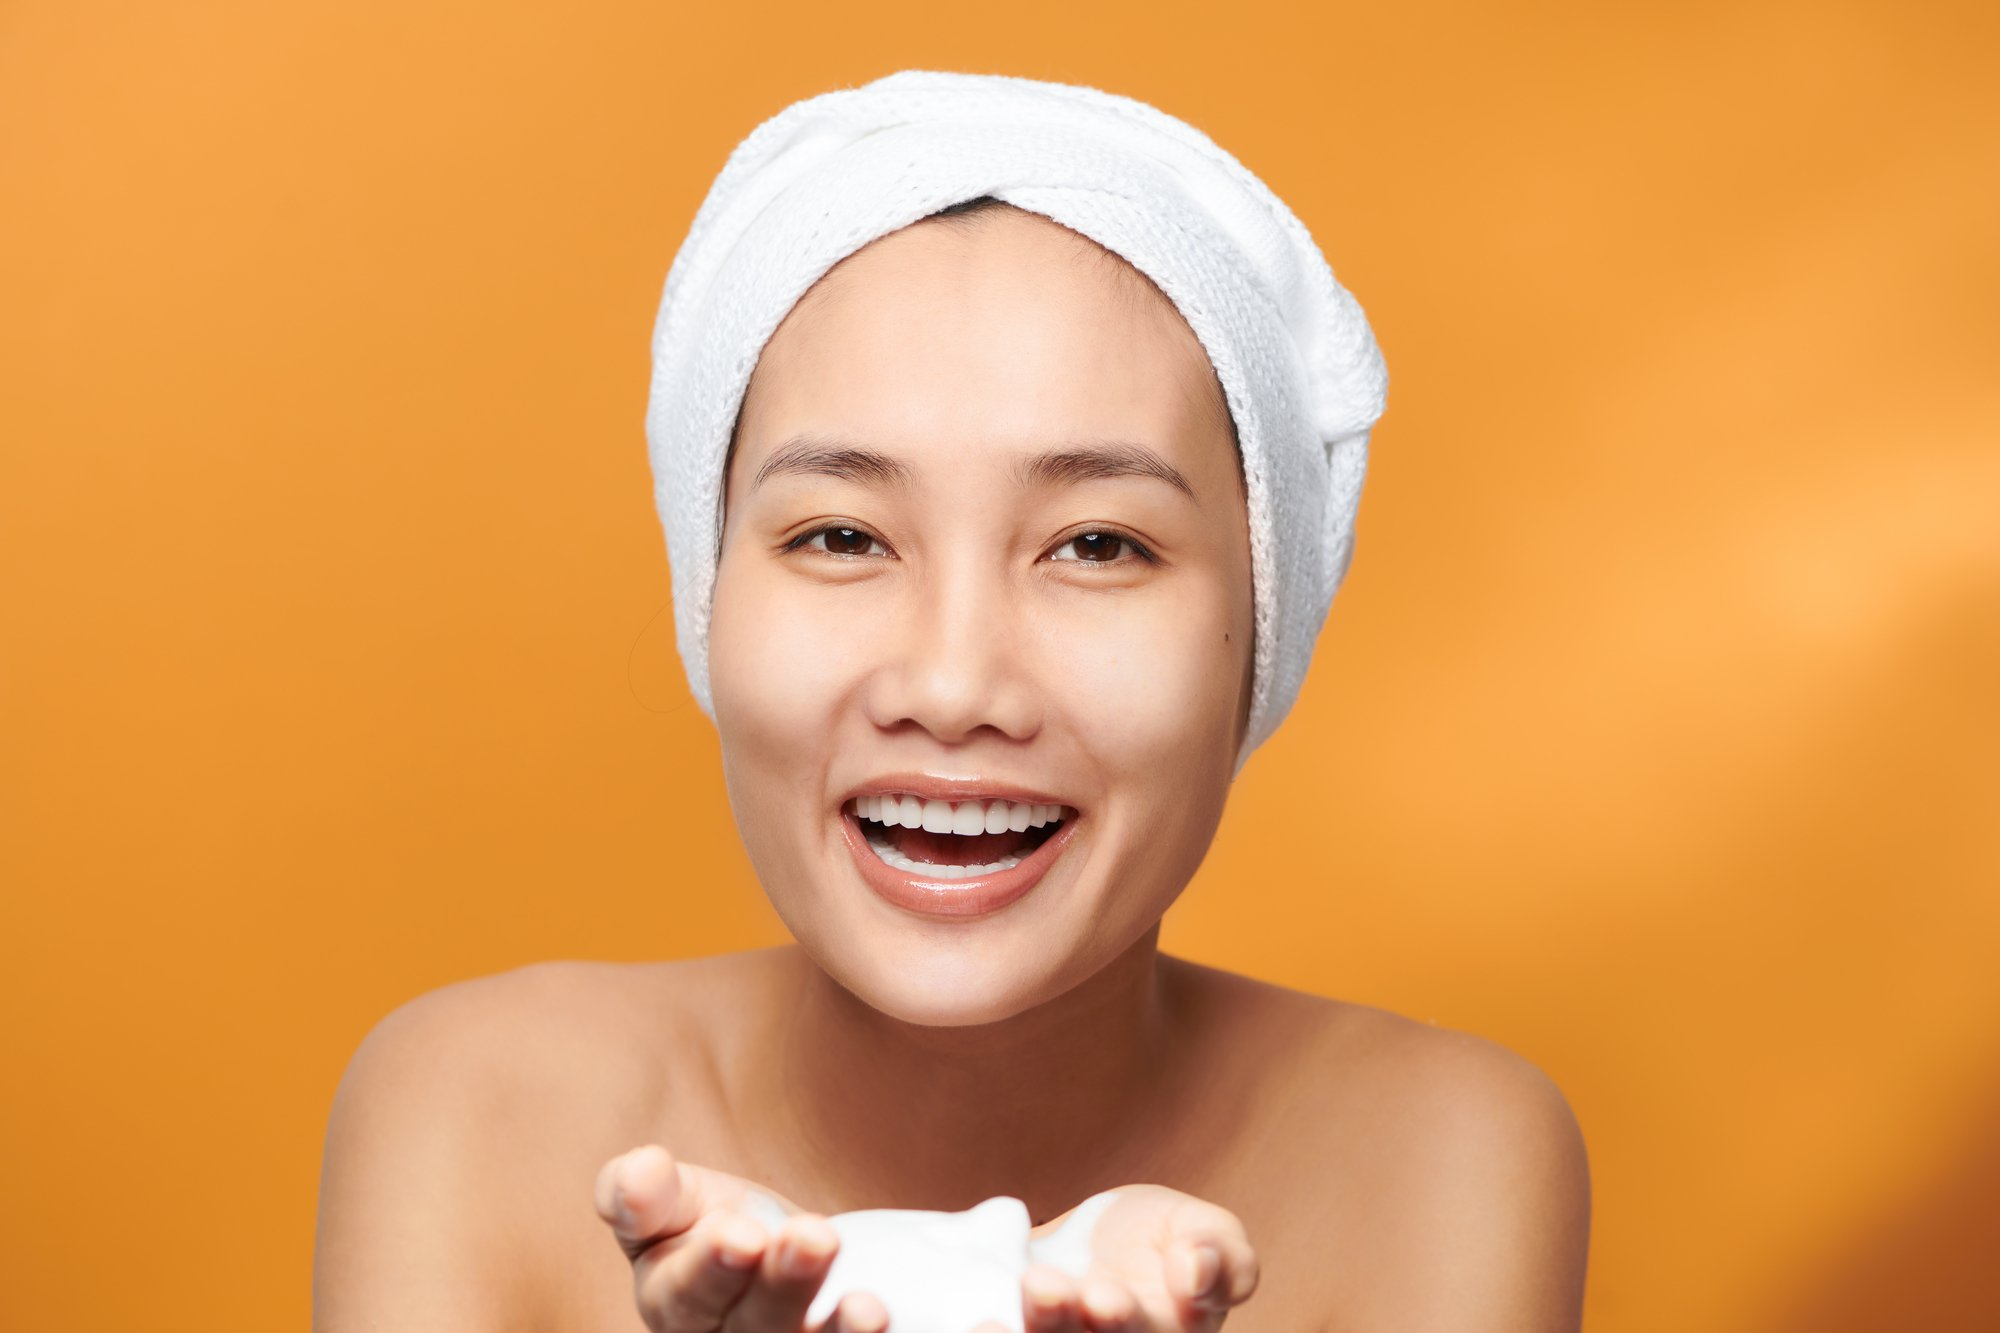 Cheerful Asian female holding foaming cleanser, has clean fresh healthy skin